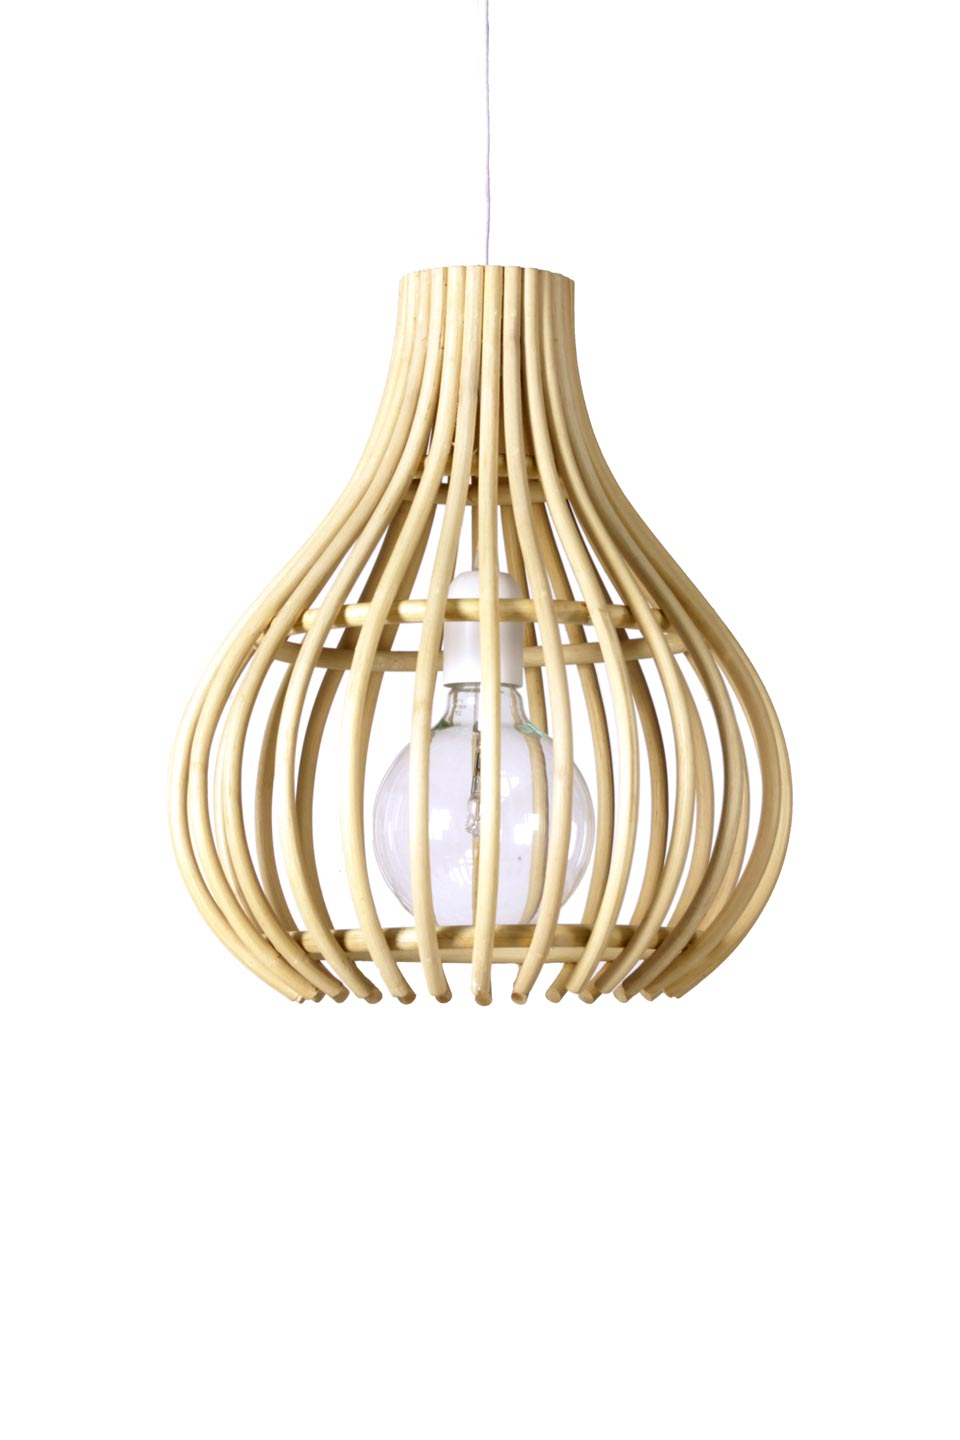 Mini Chalet En Bois small pendant, bulb shape, available in black and in large model